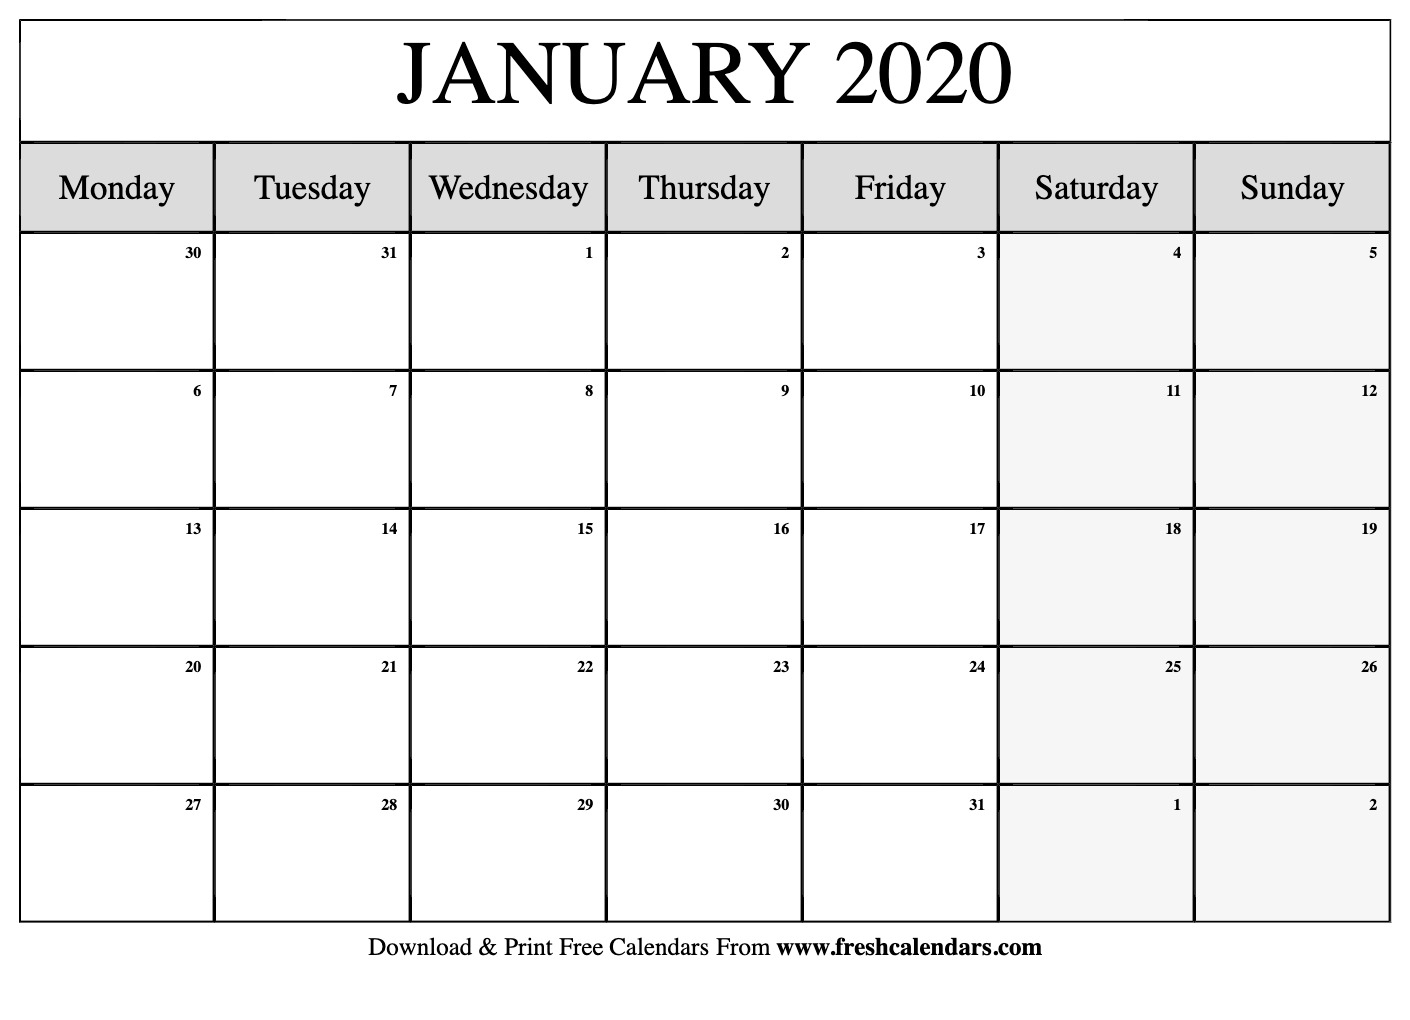 Free Printable January 2020 Calendars regarding 2020 Monthly Calendar Start Monday